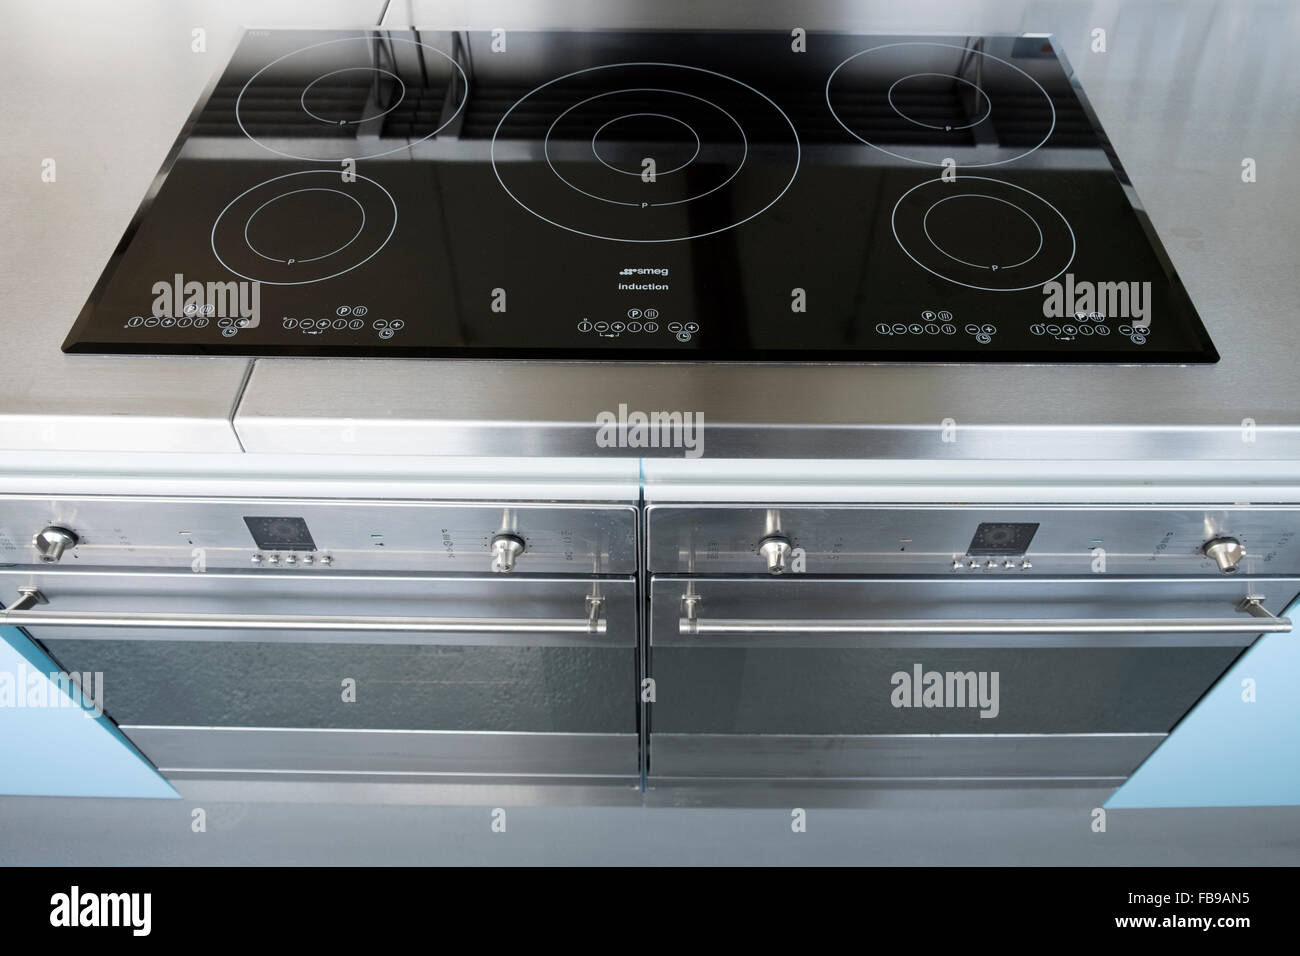 Smeg induction electric cooker hob - Stock Image